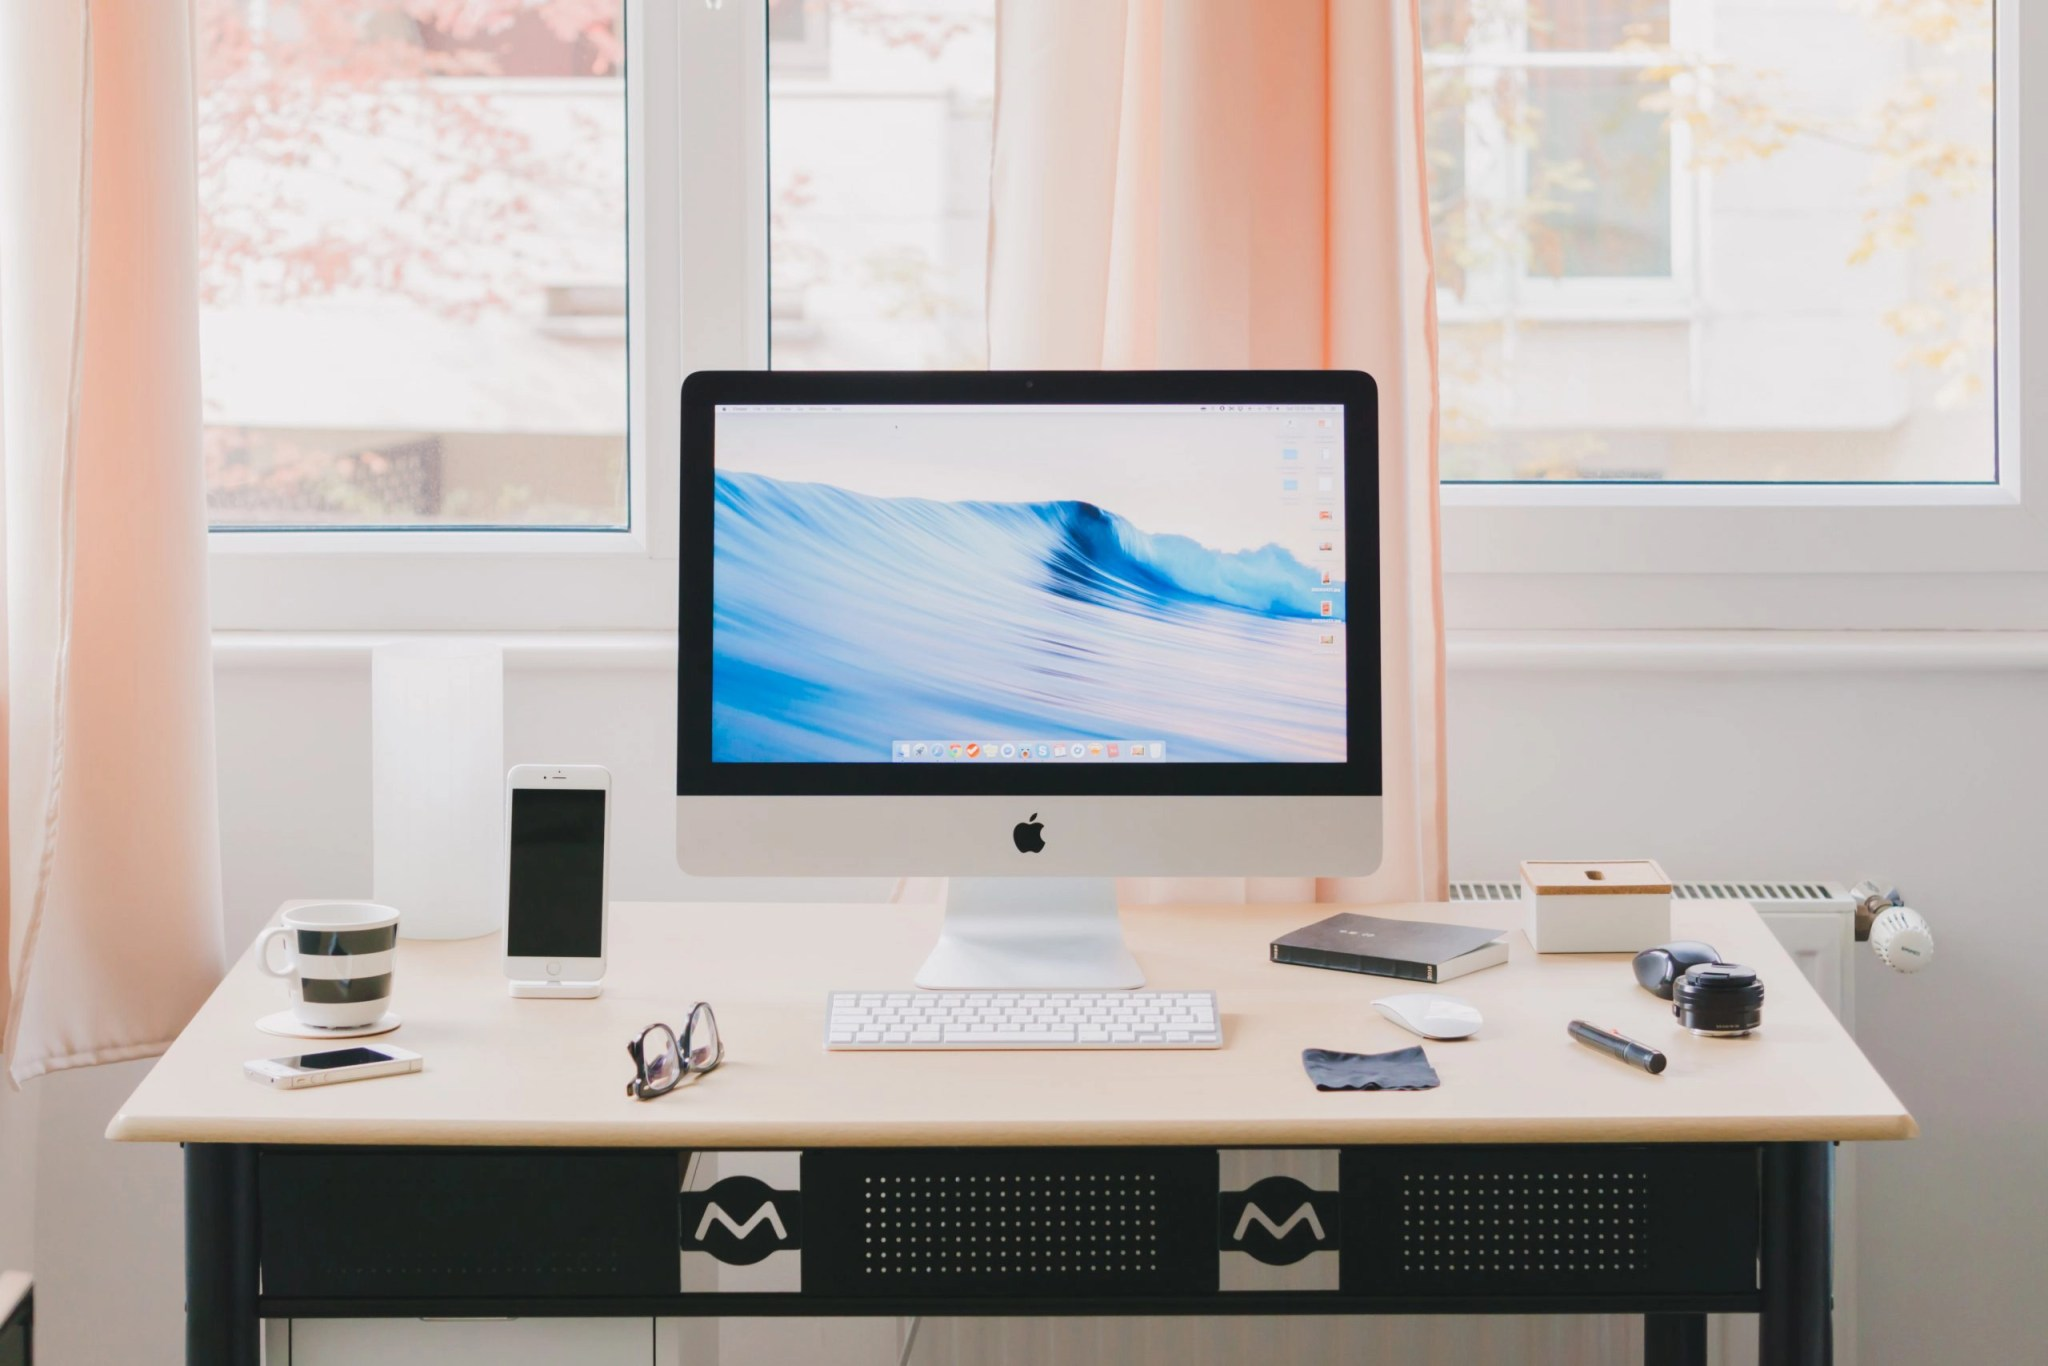 12 Tips for Working from Home (and Staying Connected)